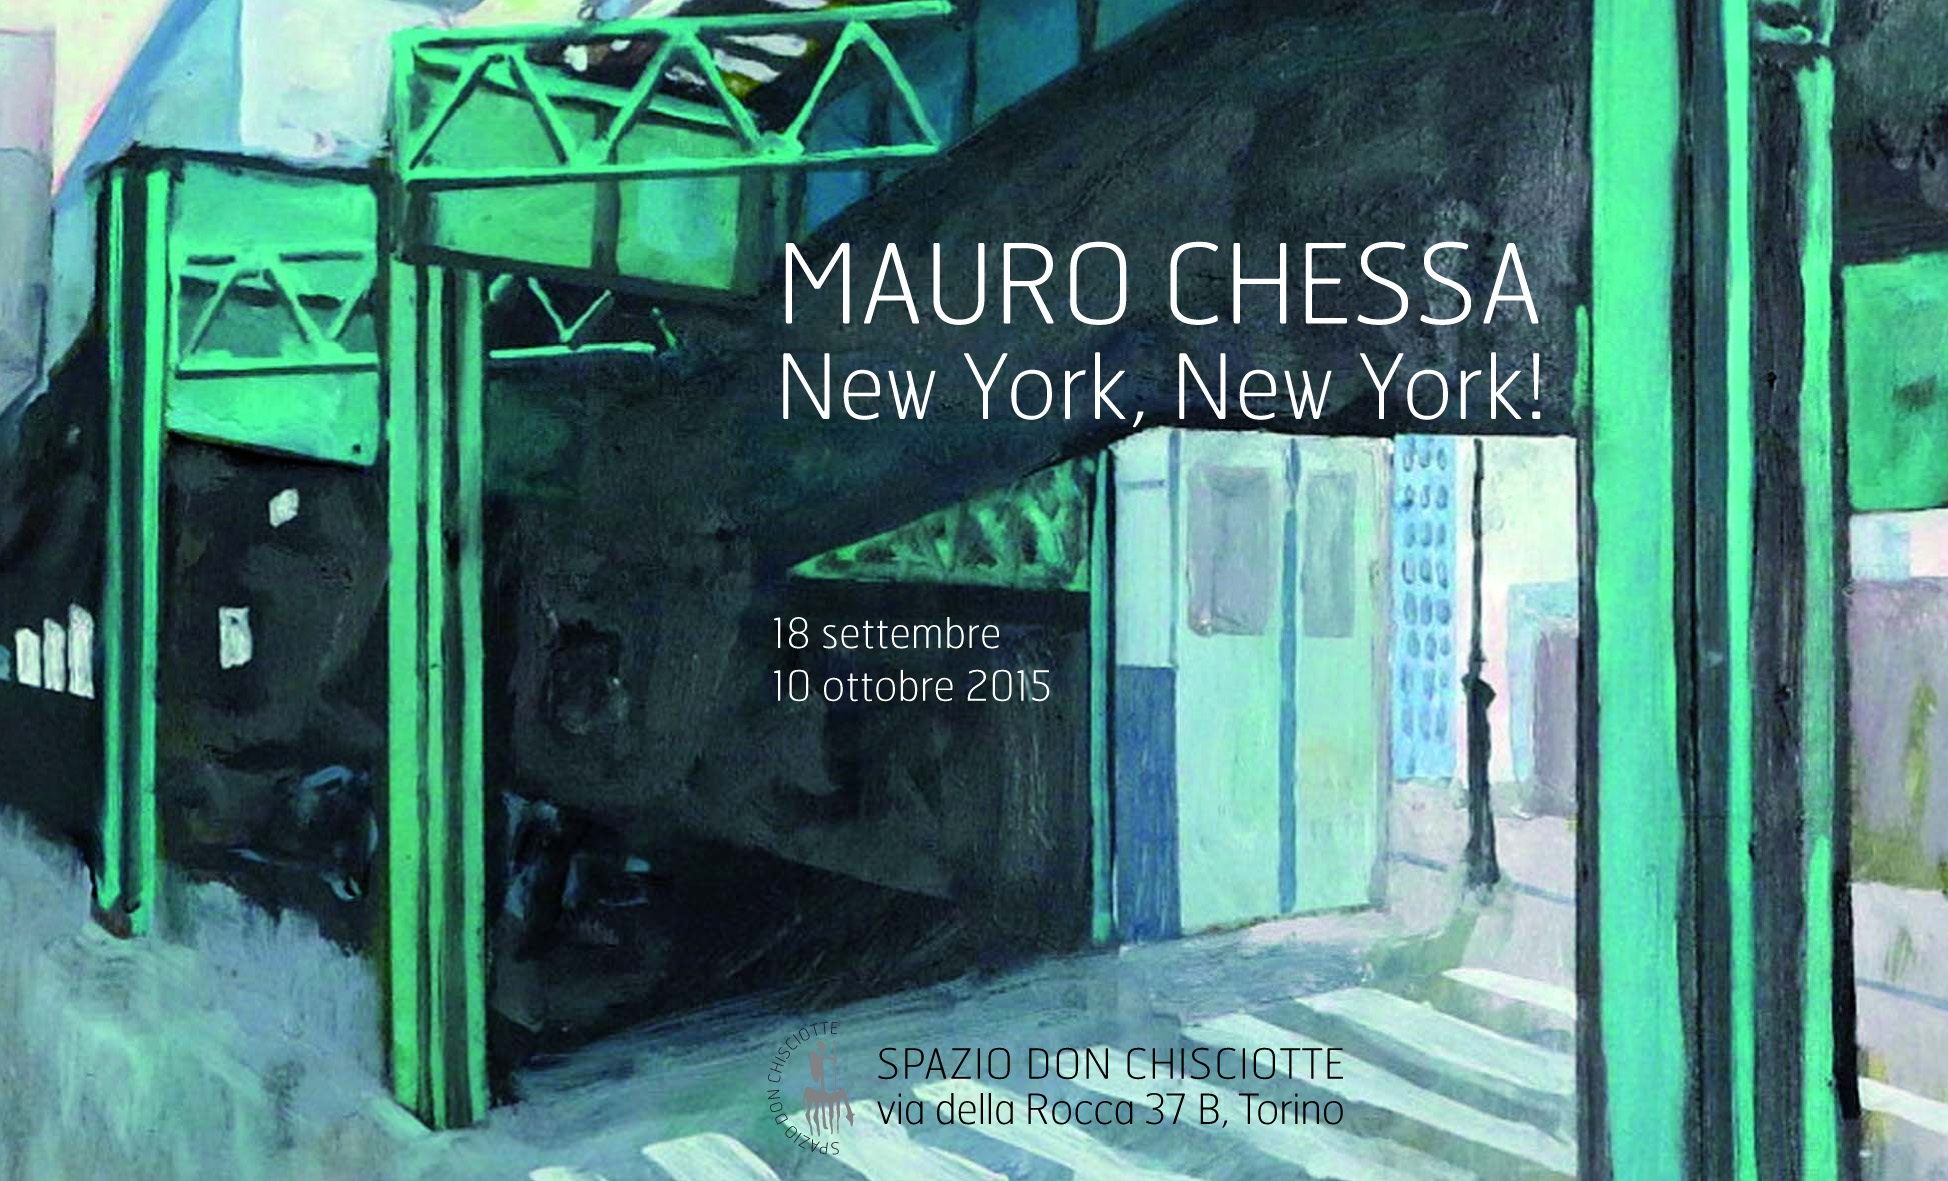 Mauro Chessa, New York New York